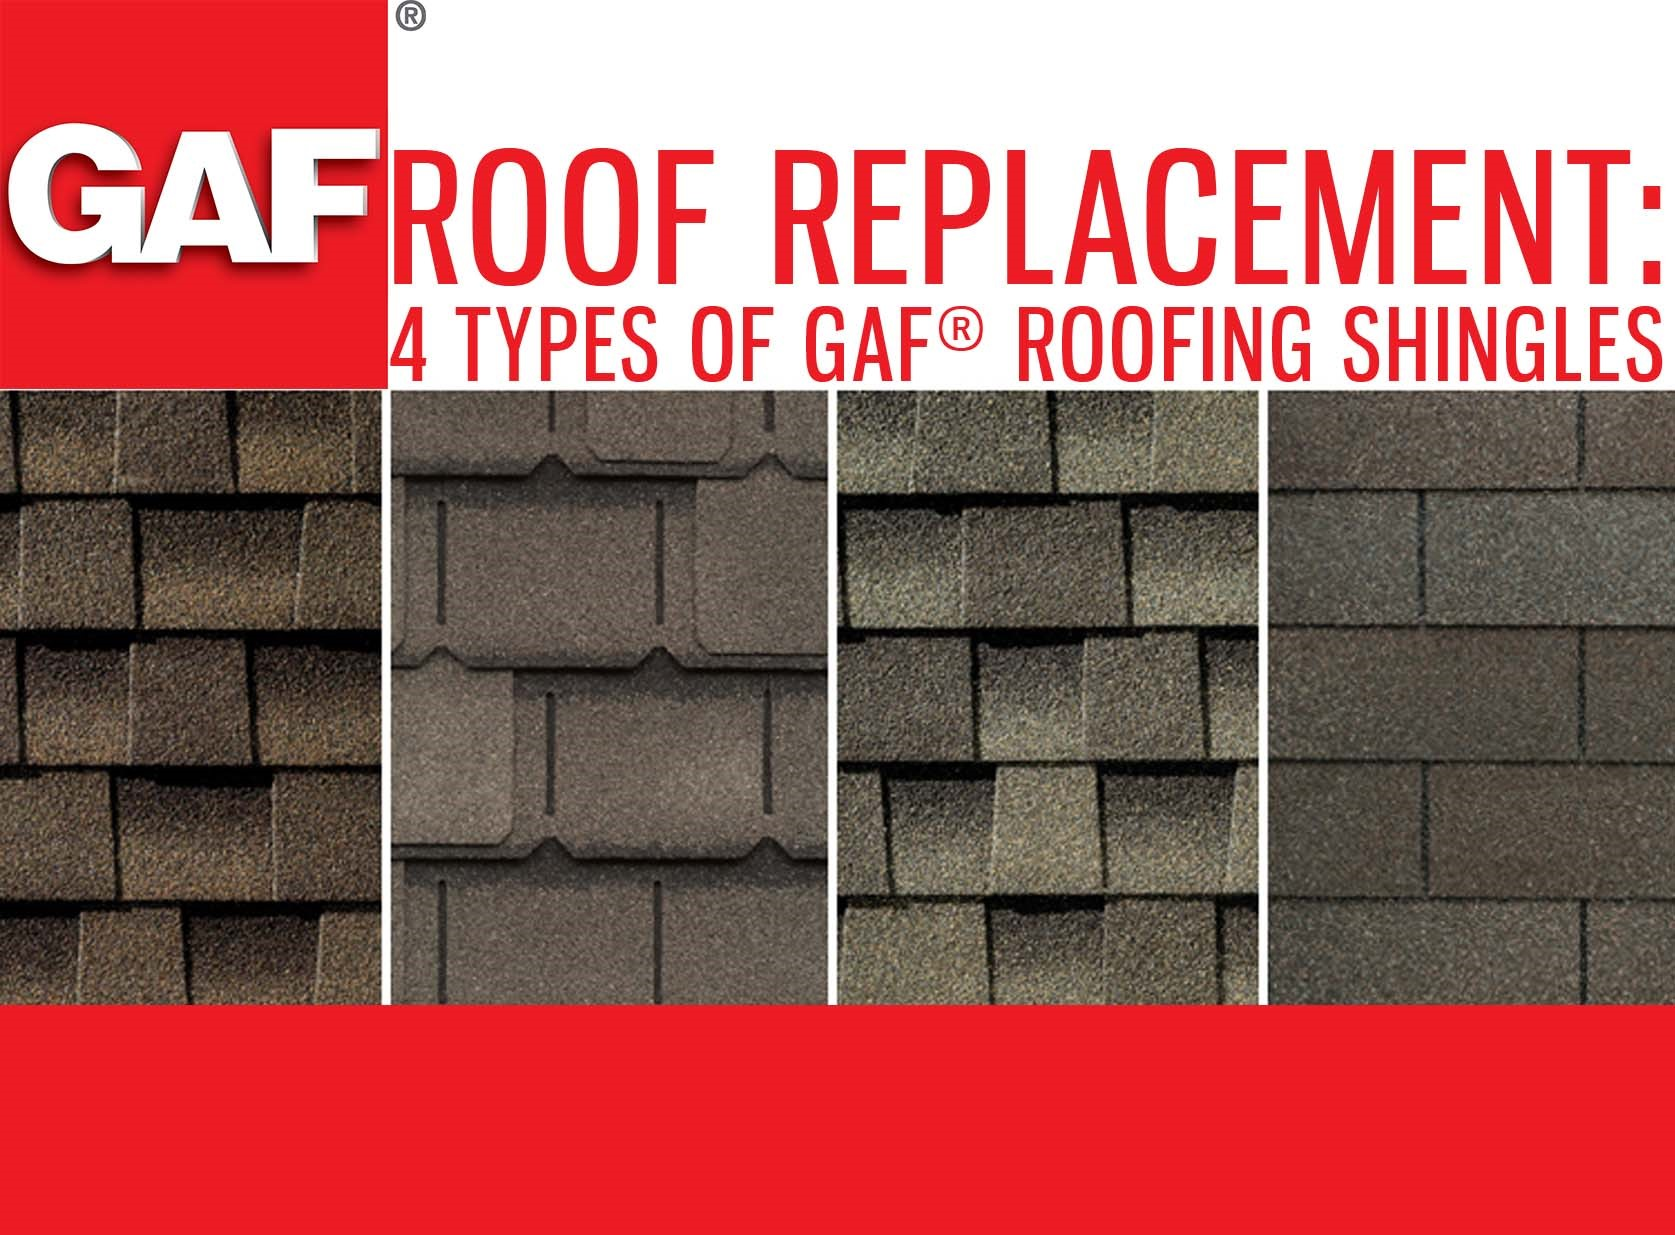 Roof replacement 4 types of gaf roofing shingles for Types of shingles for roofing